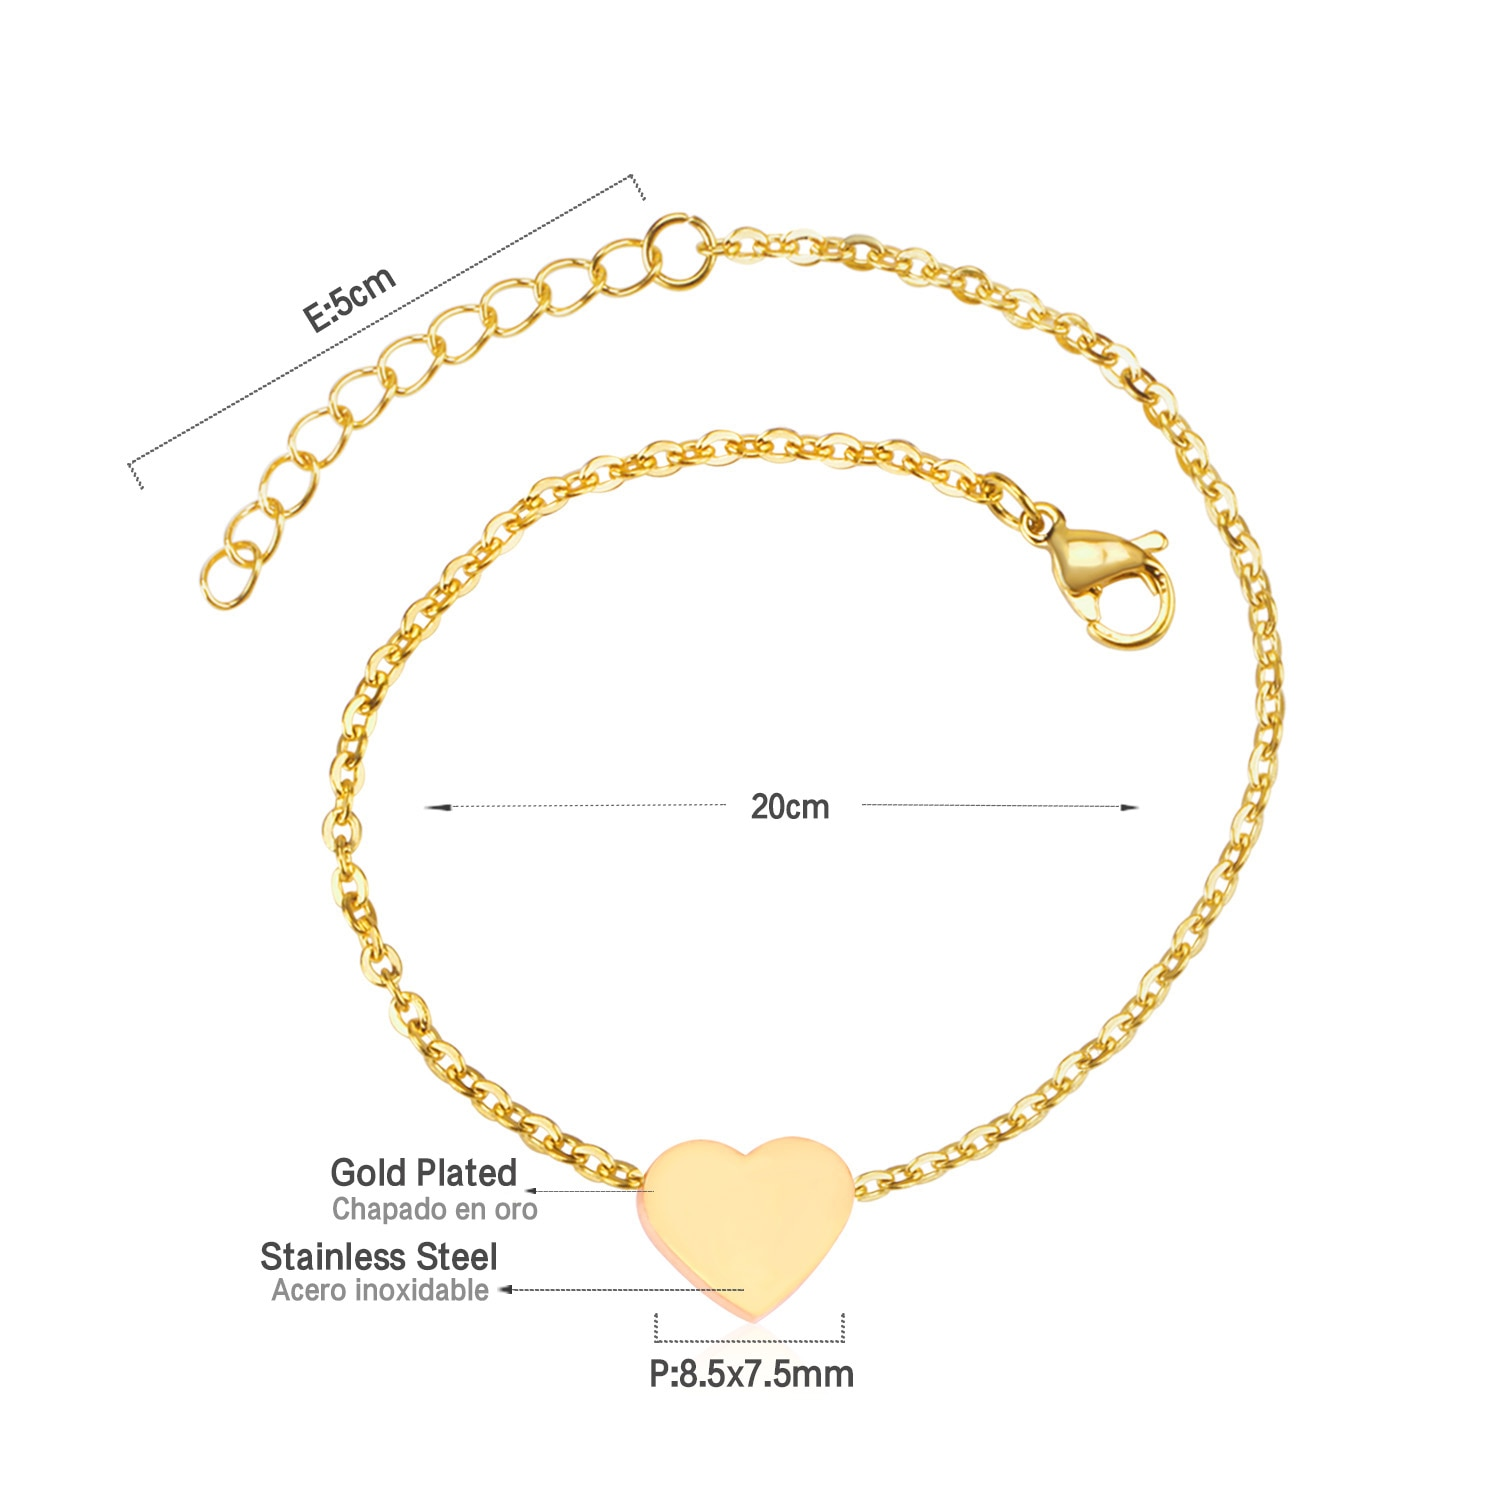 ZARA – Romantic Heart Shaped Stainless Steel Anklet Anklets 8d255f28538fbae46aeae7: Gold|Silver